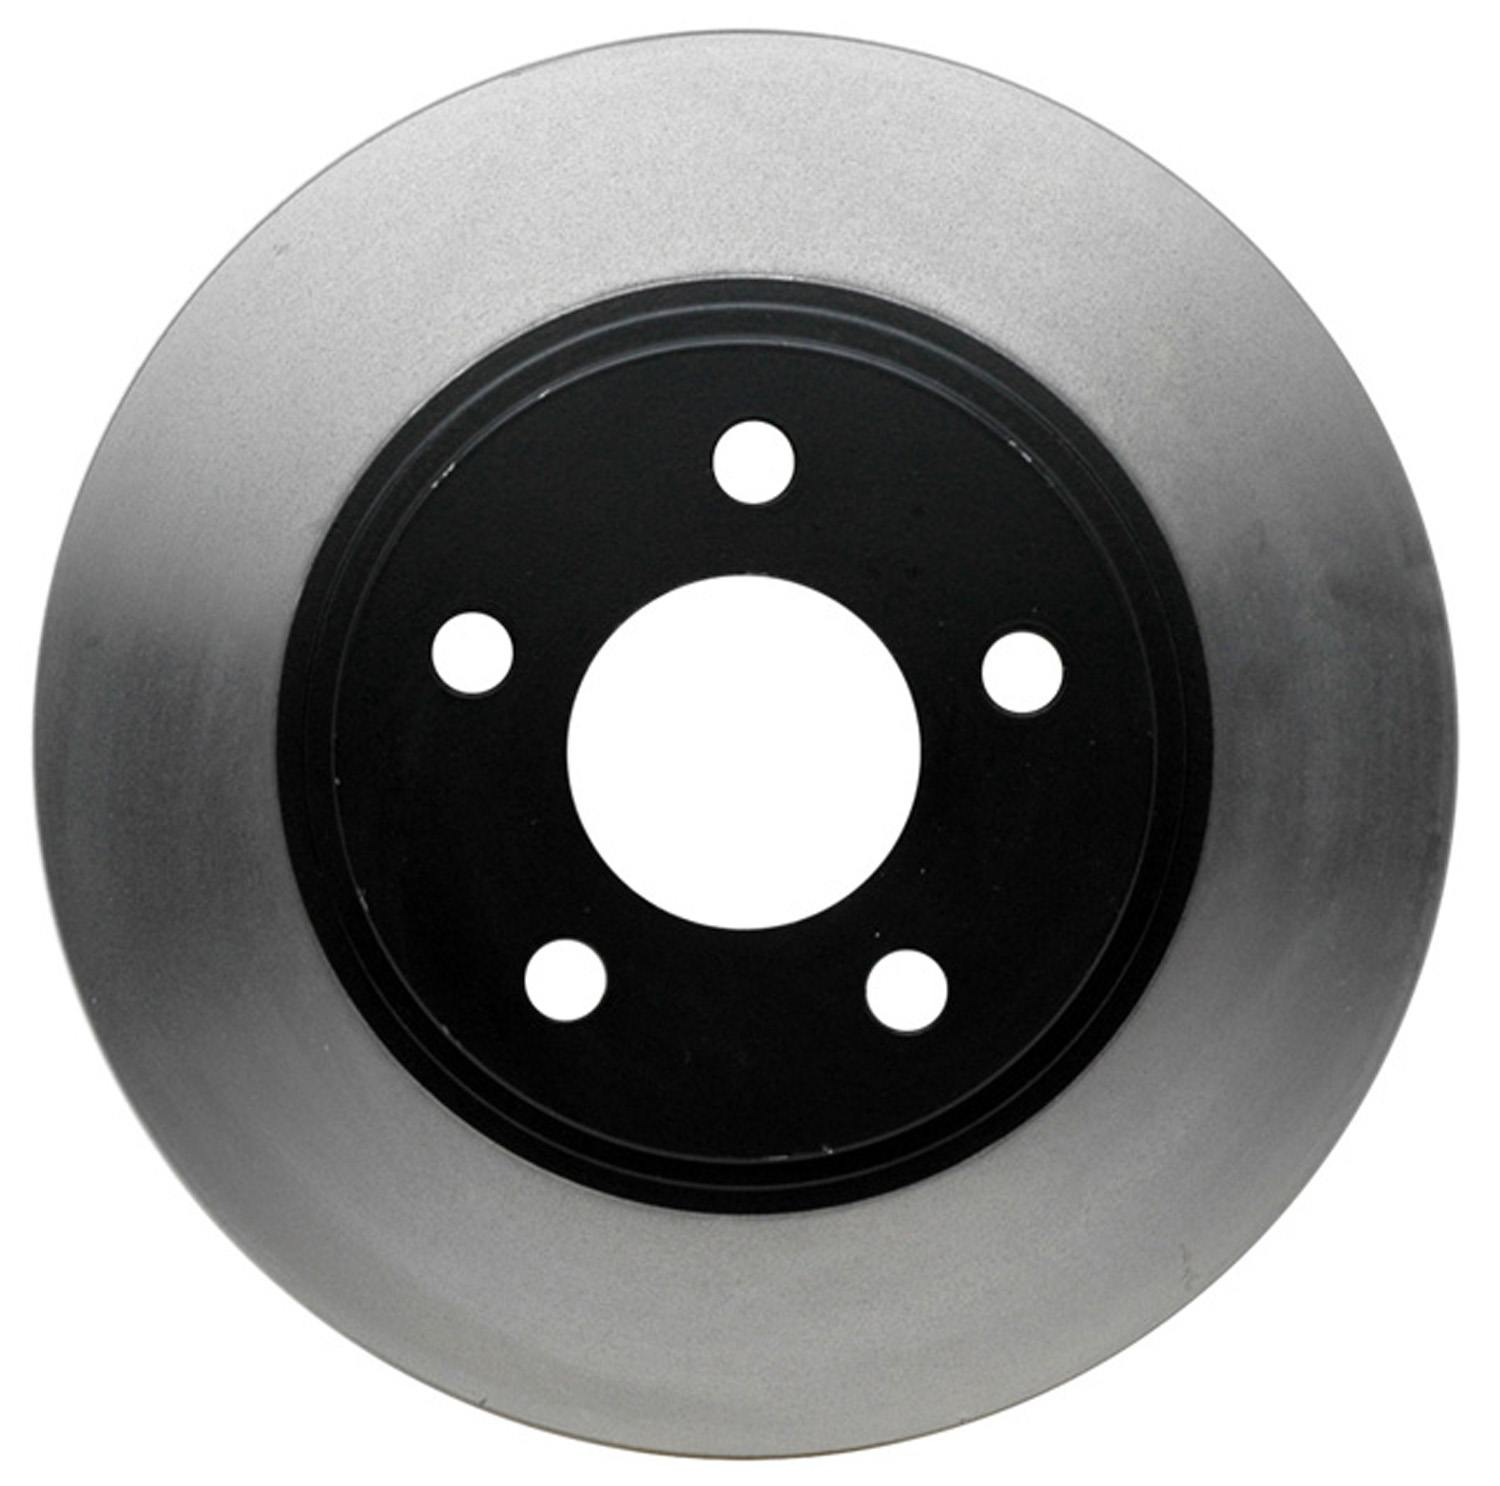 ACDELCO PROFESSIONAL BRAKES - Disc Brake Rotor (Rear) - ADU 18A911